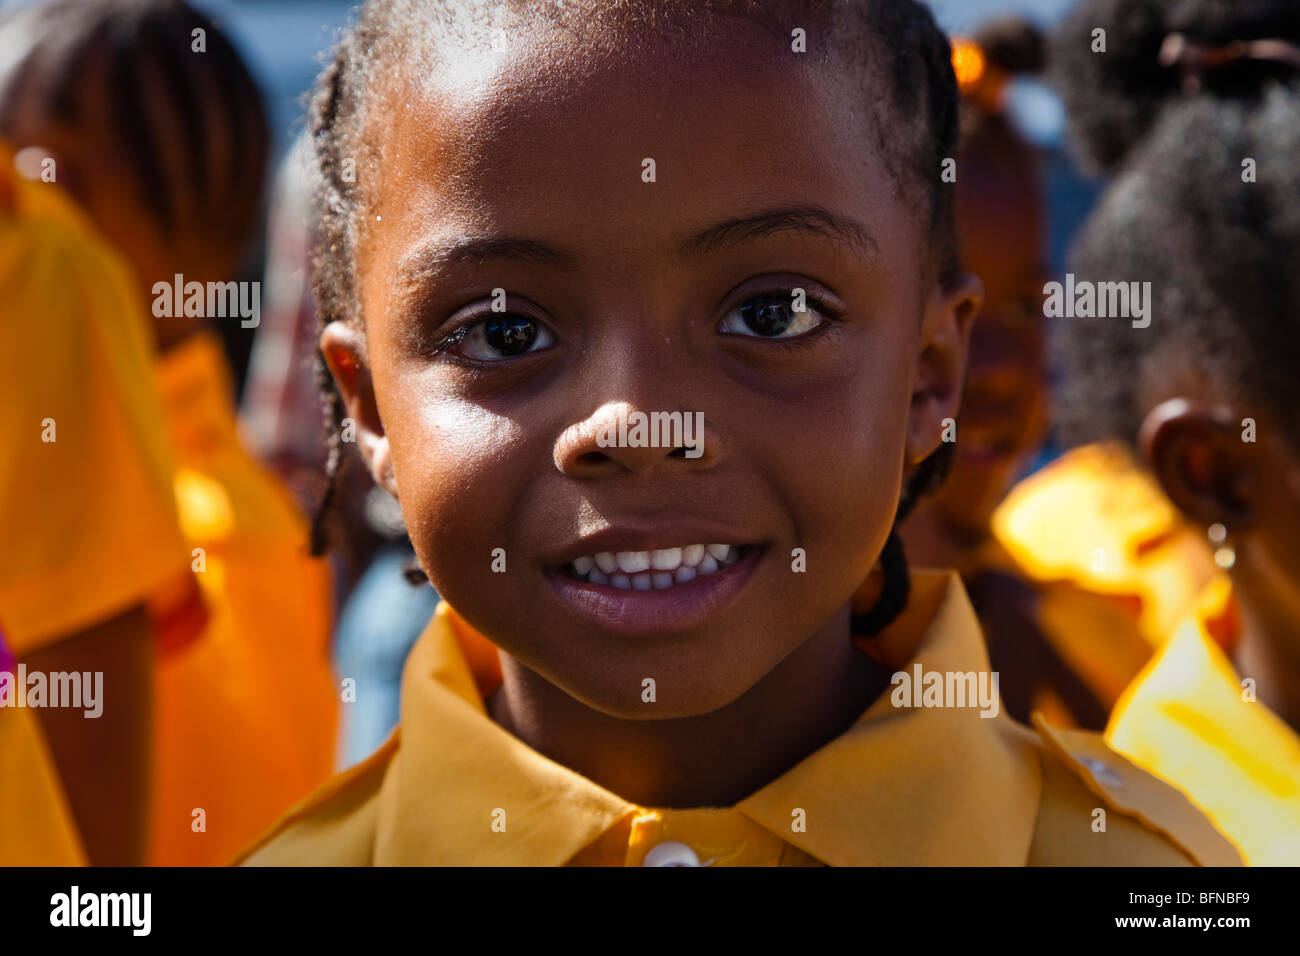 Young girl from Antigua dressed in Girl Guides outfit, celebrating Independence Day - Stock Image